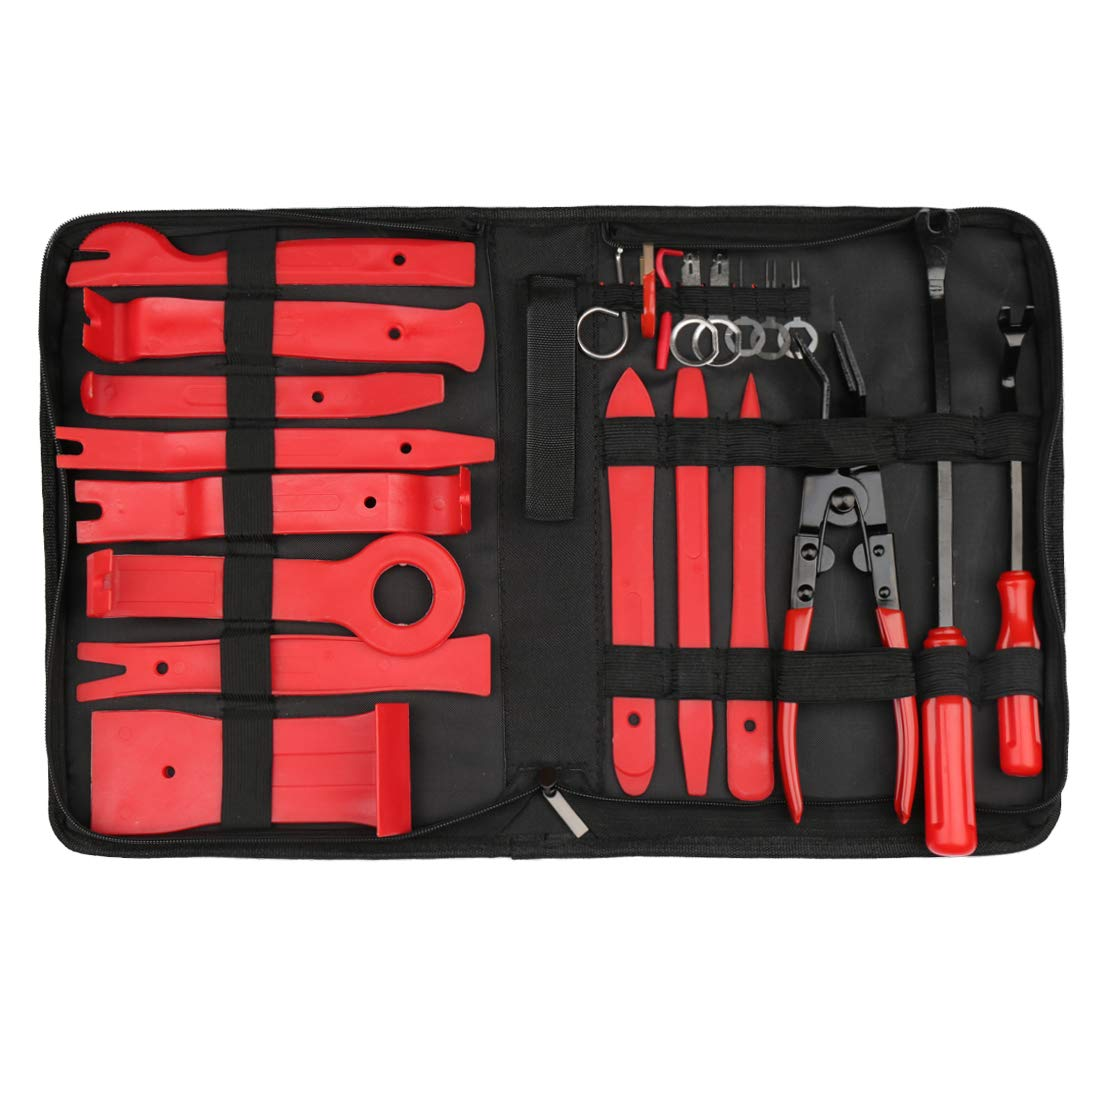 uxcell Car Trim Removal Tool Set Nylon Red Panel Dash Audio Radio Tire Valve Repair Kits 22 in 1 by uxcell (Image #7)